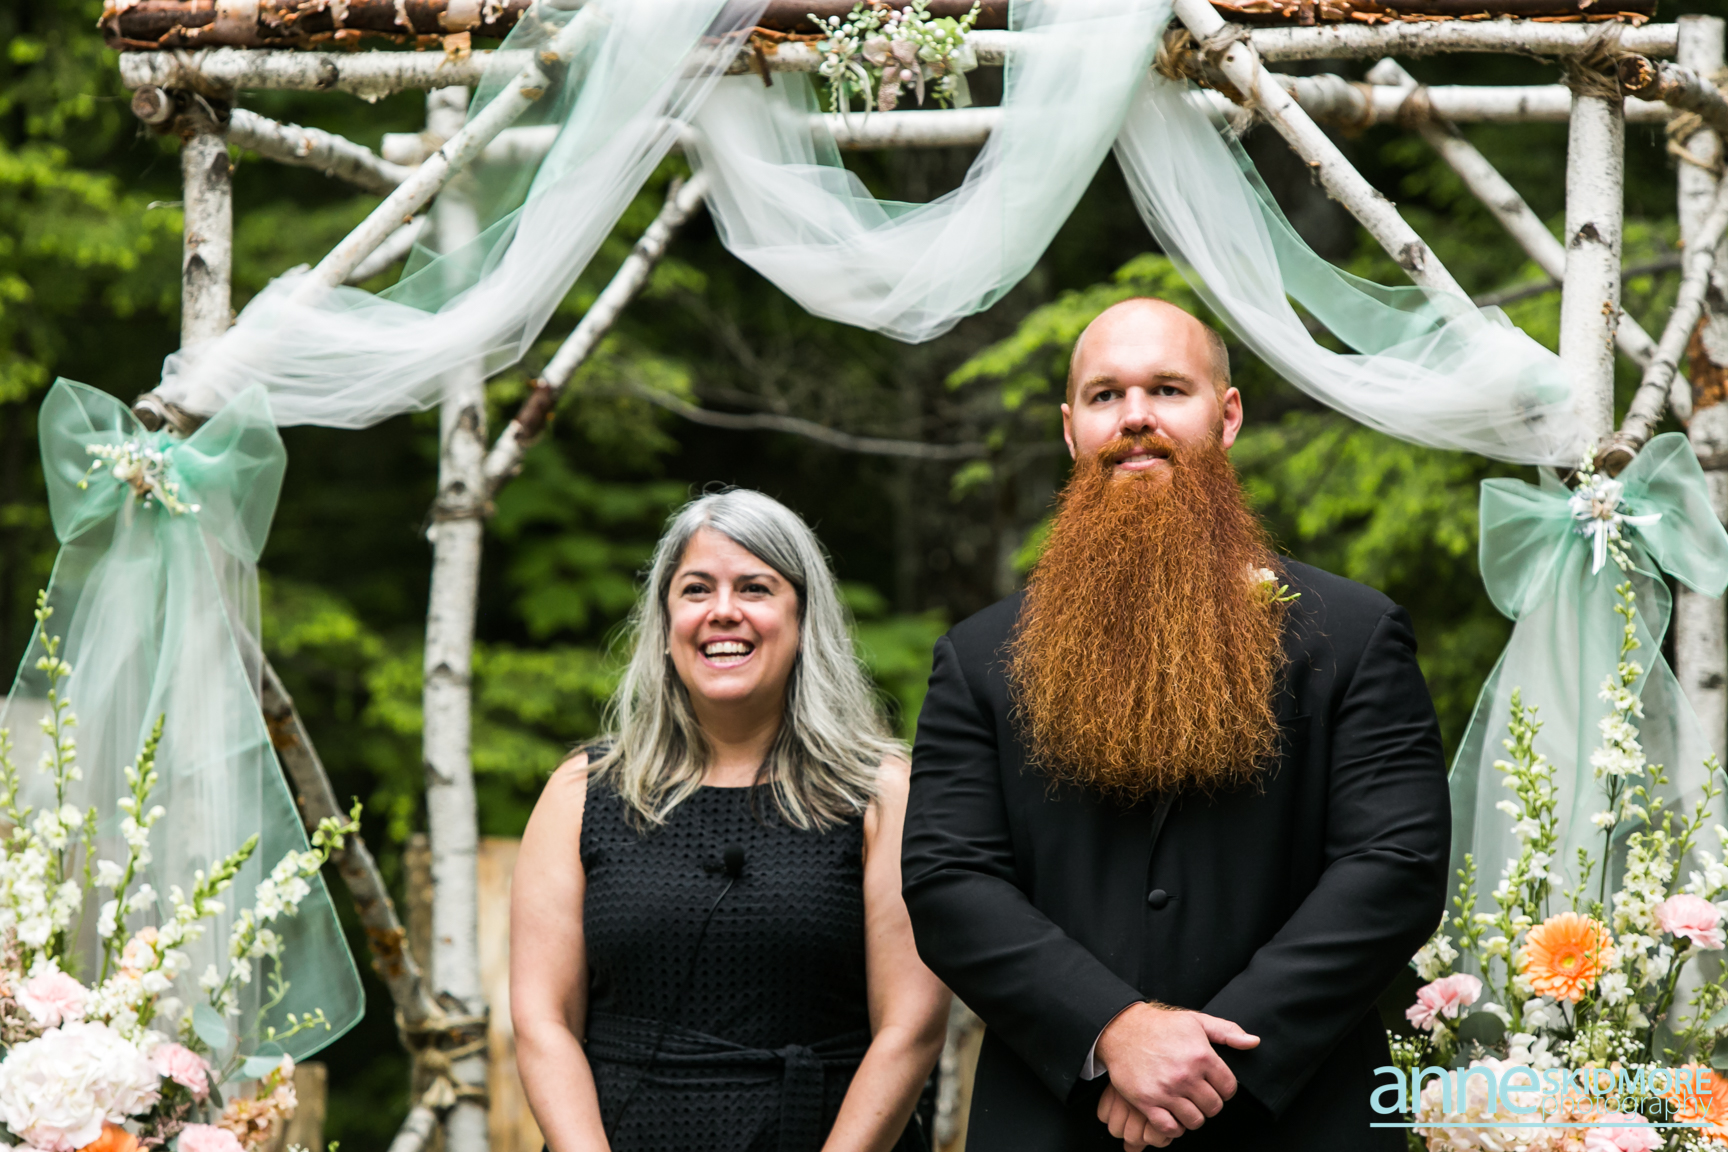 Norway Maine wedding officiant | Photo by Anne Skidmore Photography